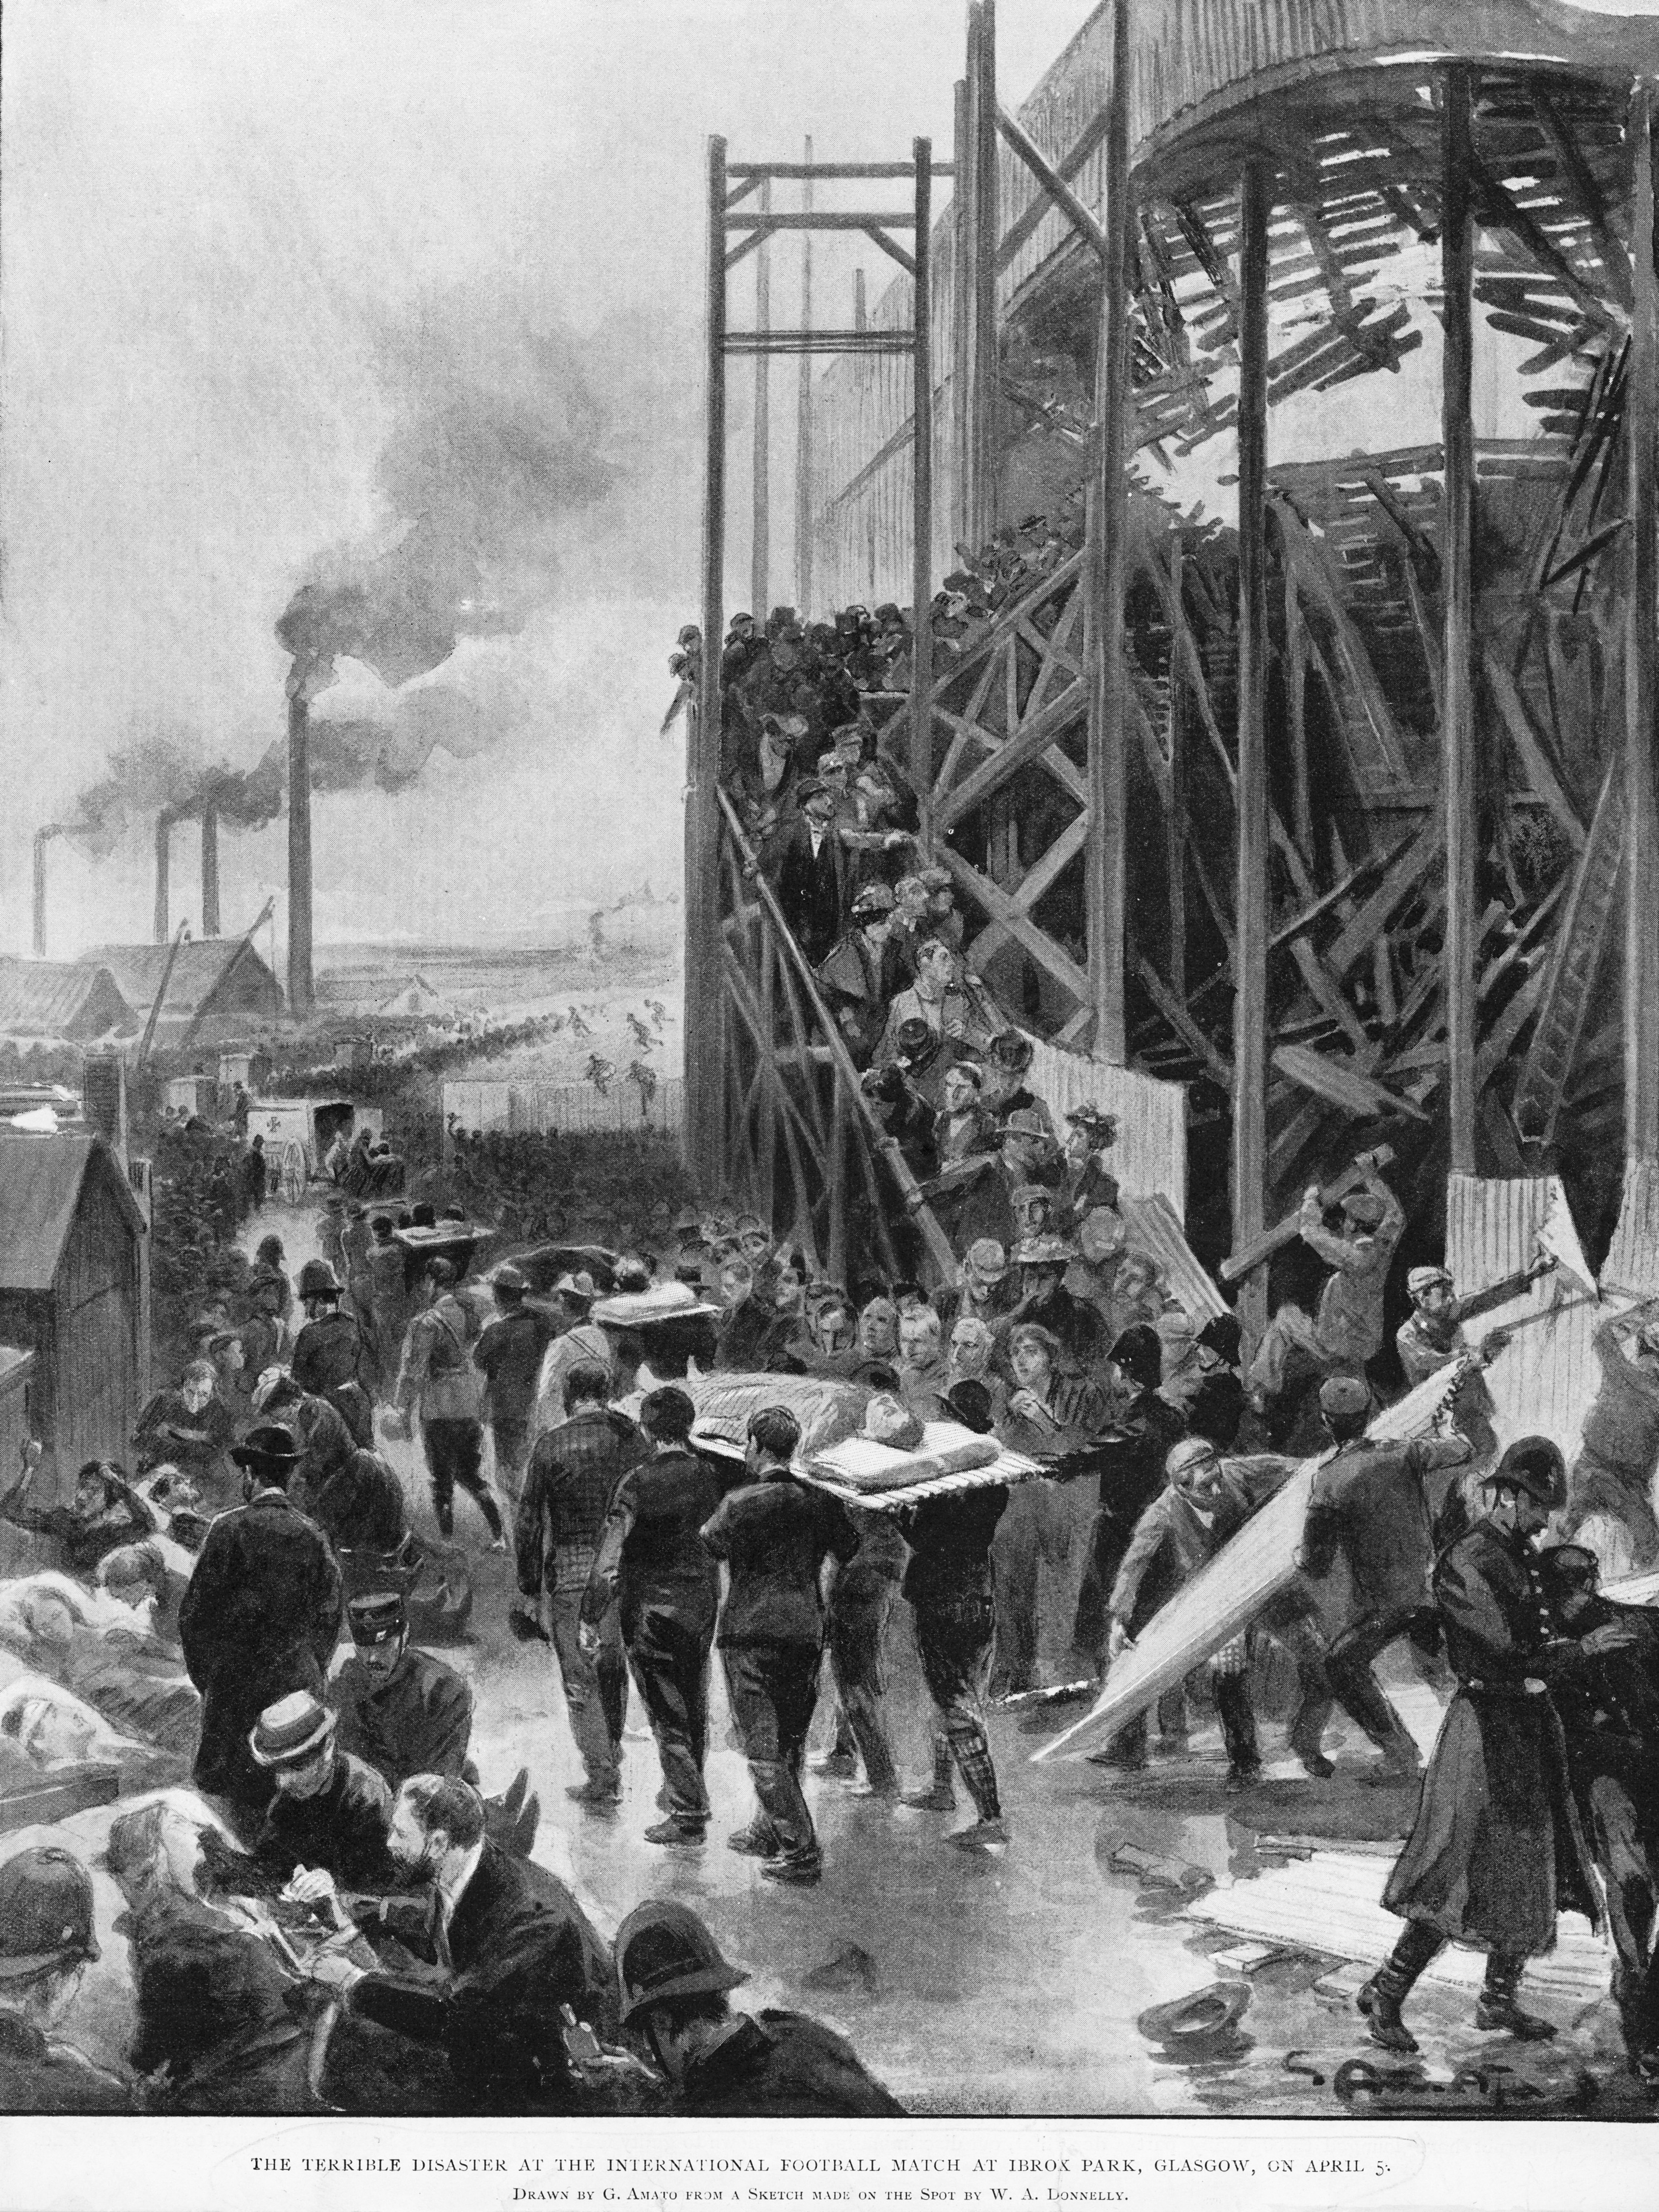 5th April 1902: Victims are stretchered away from the accident scene after a section of the terracing at Ibrox Park football ground in Glasgow collapsed during a Scotland vs England international fixture. Twenty five people were killed and 517 injured. Drawn by G Amoto from W A Donnelly (Photo by HultonArchive/Illustrated London News/Getty Images)